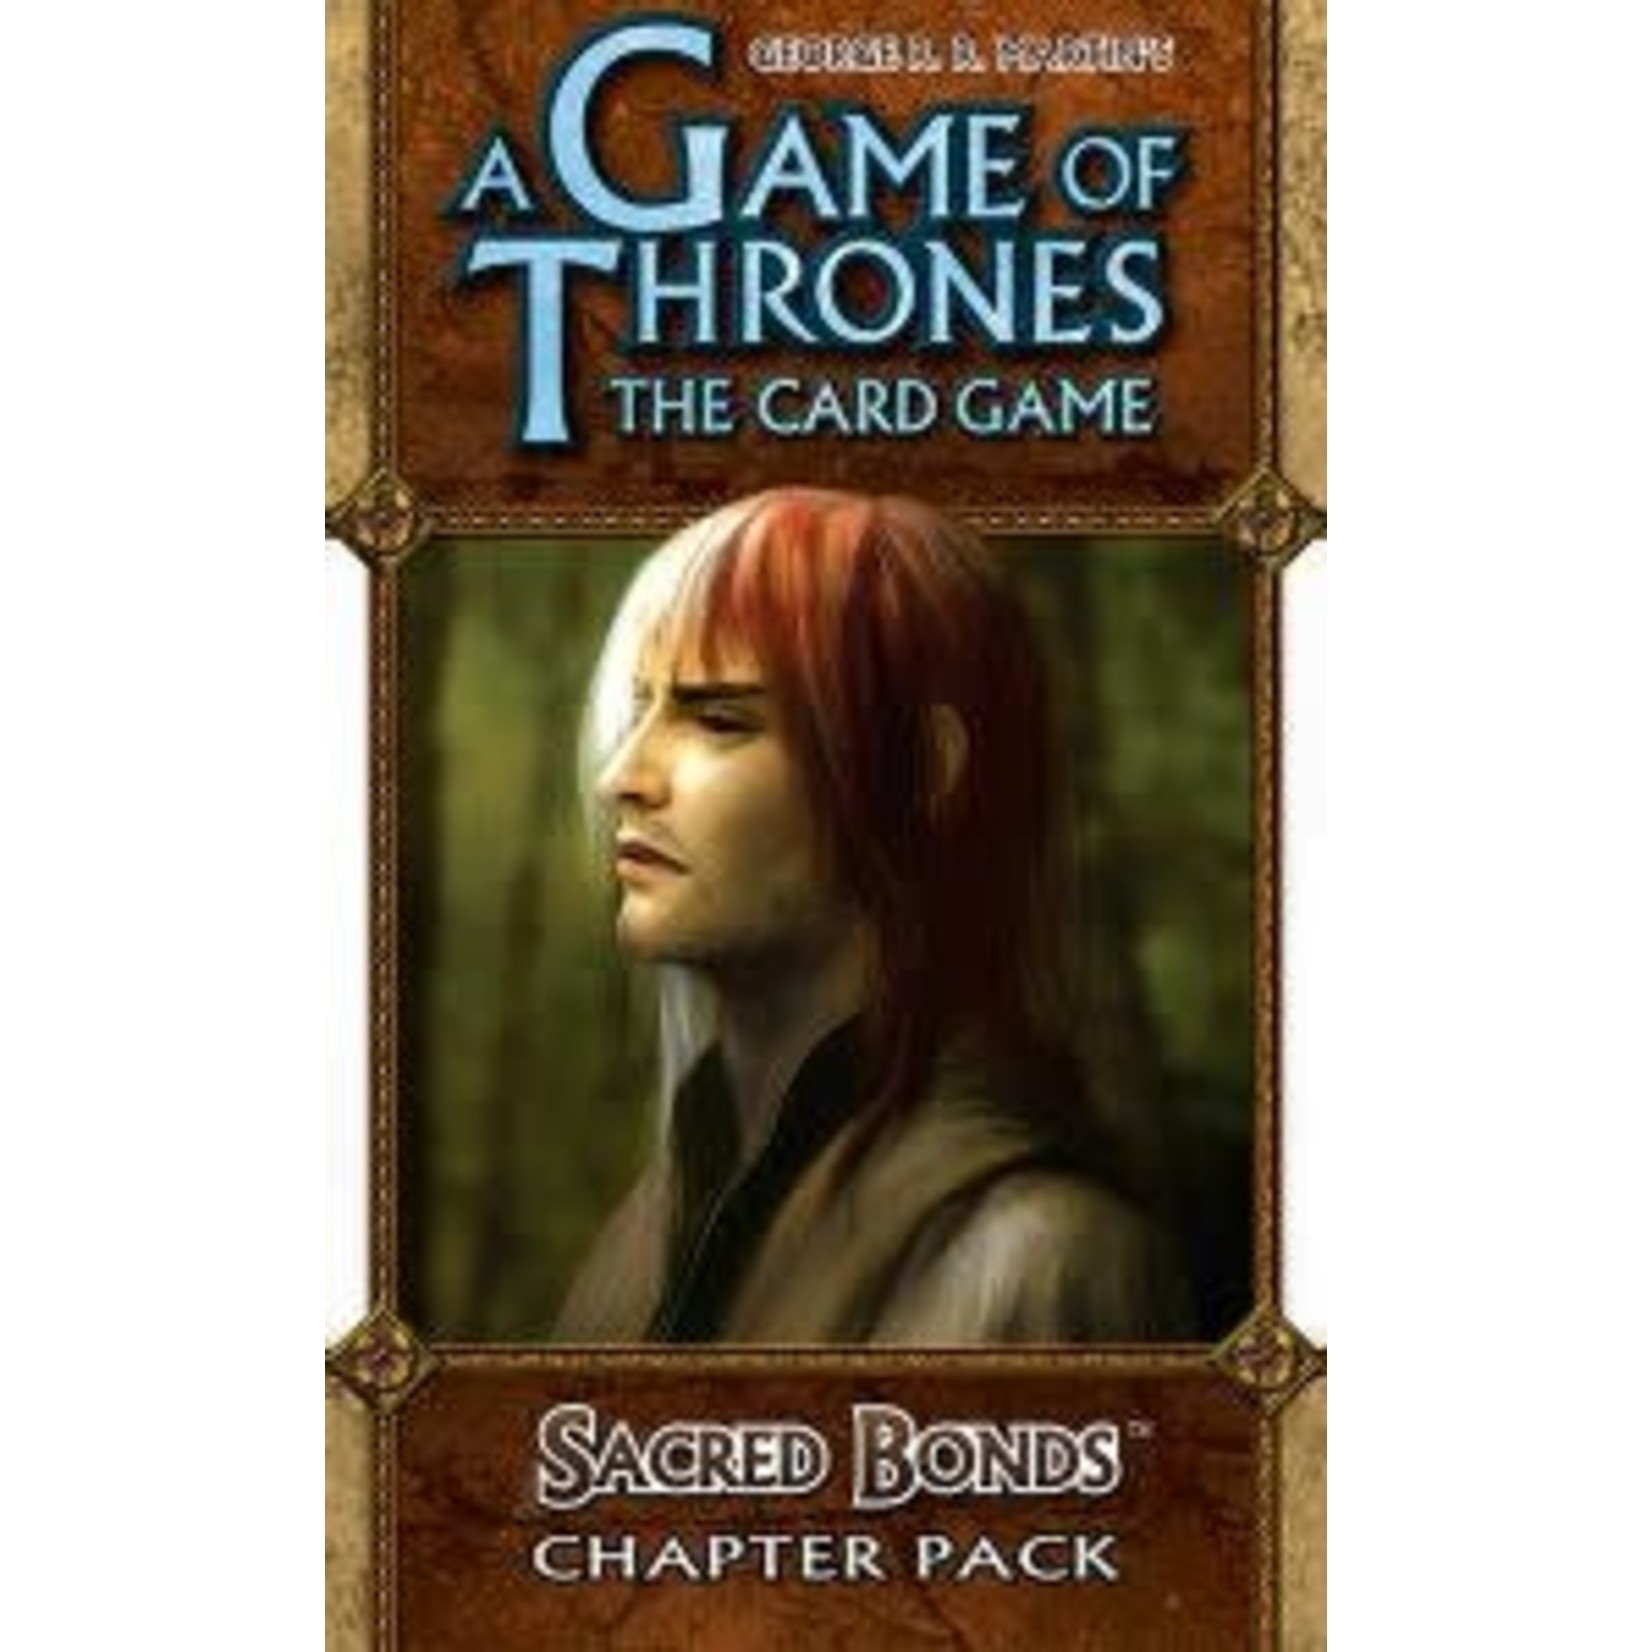 Game of Thrones LCG Sacred Bonds Expansion